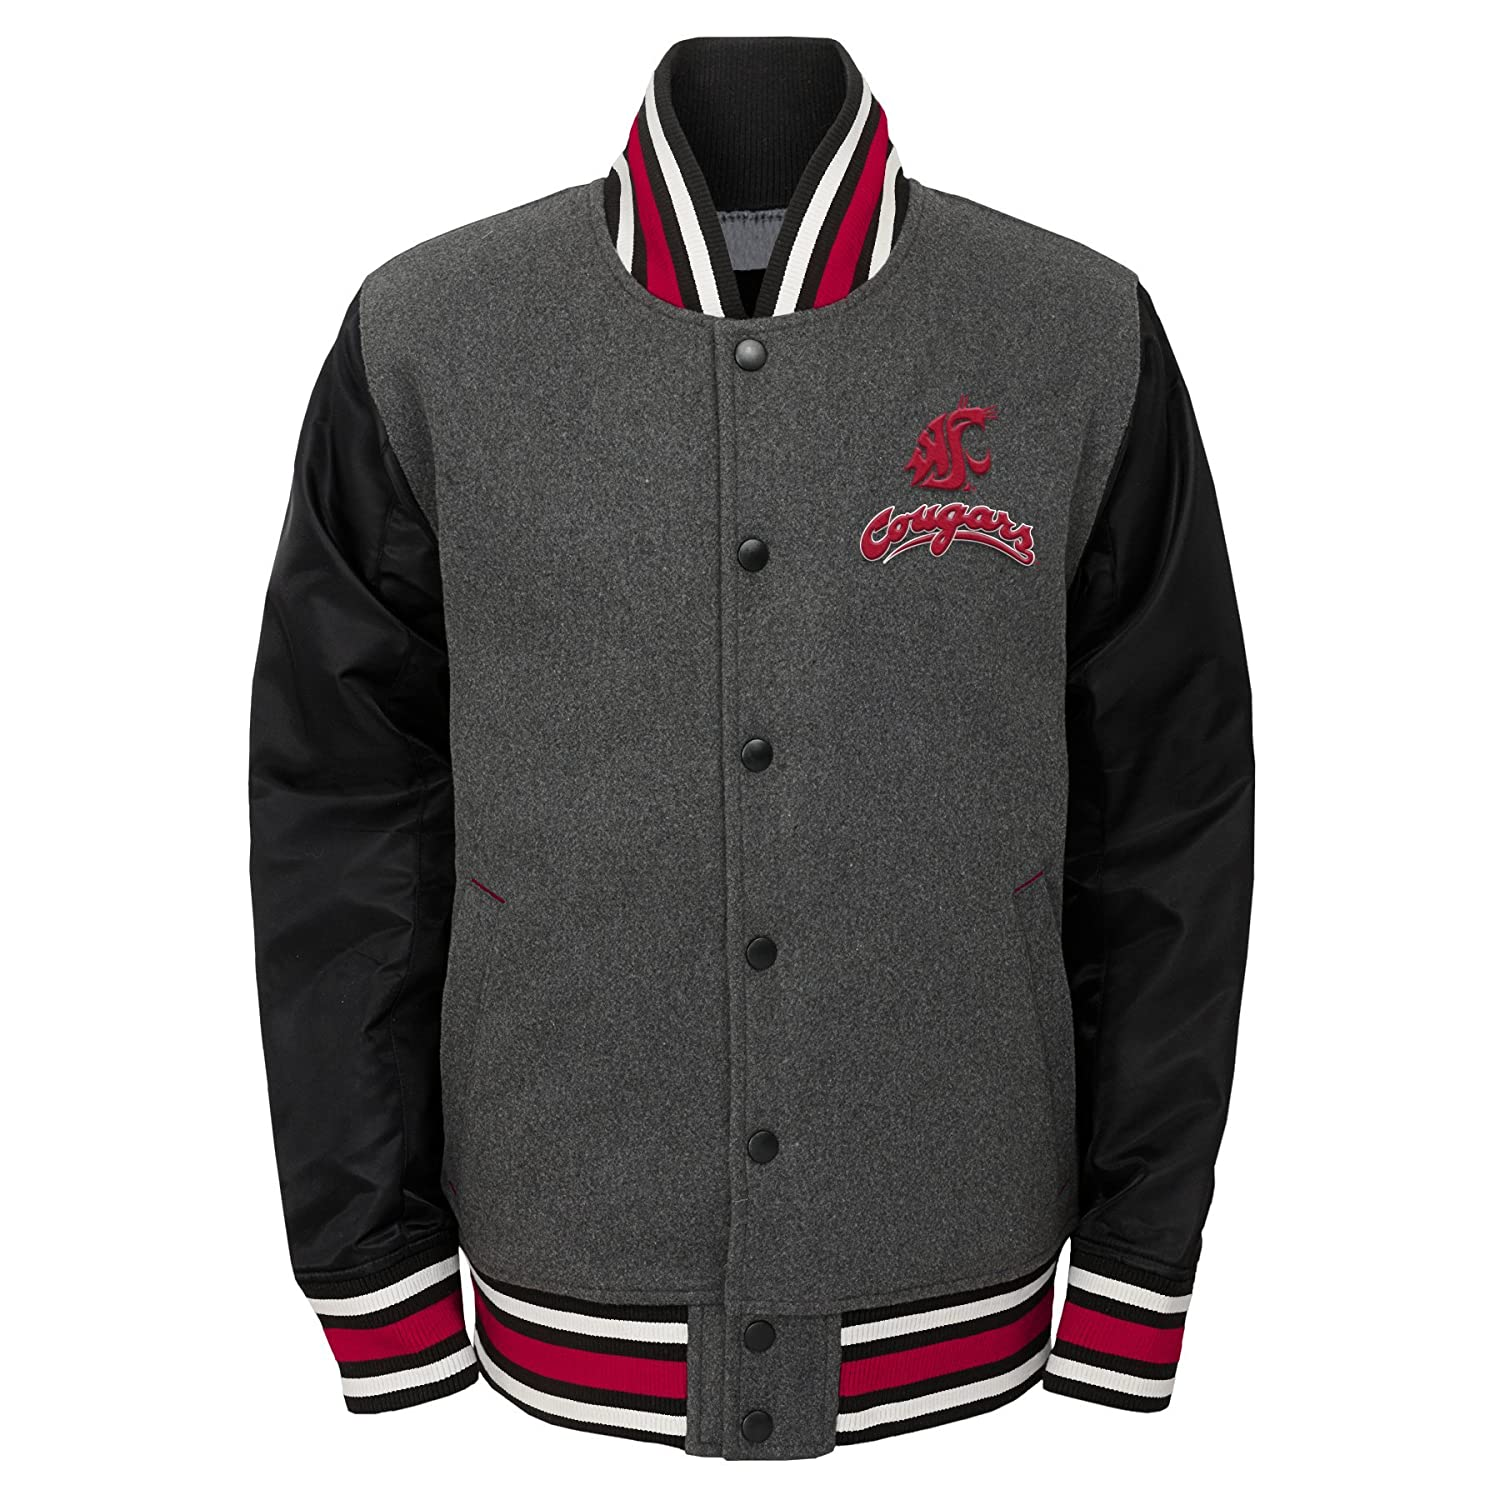 NCAA Youth Boys Letterman Varsity Jacket